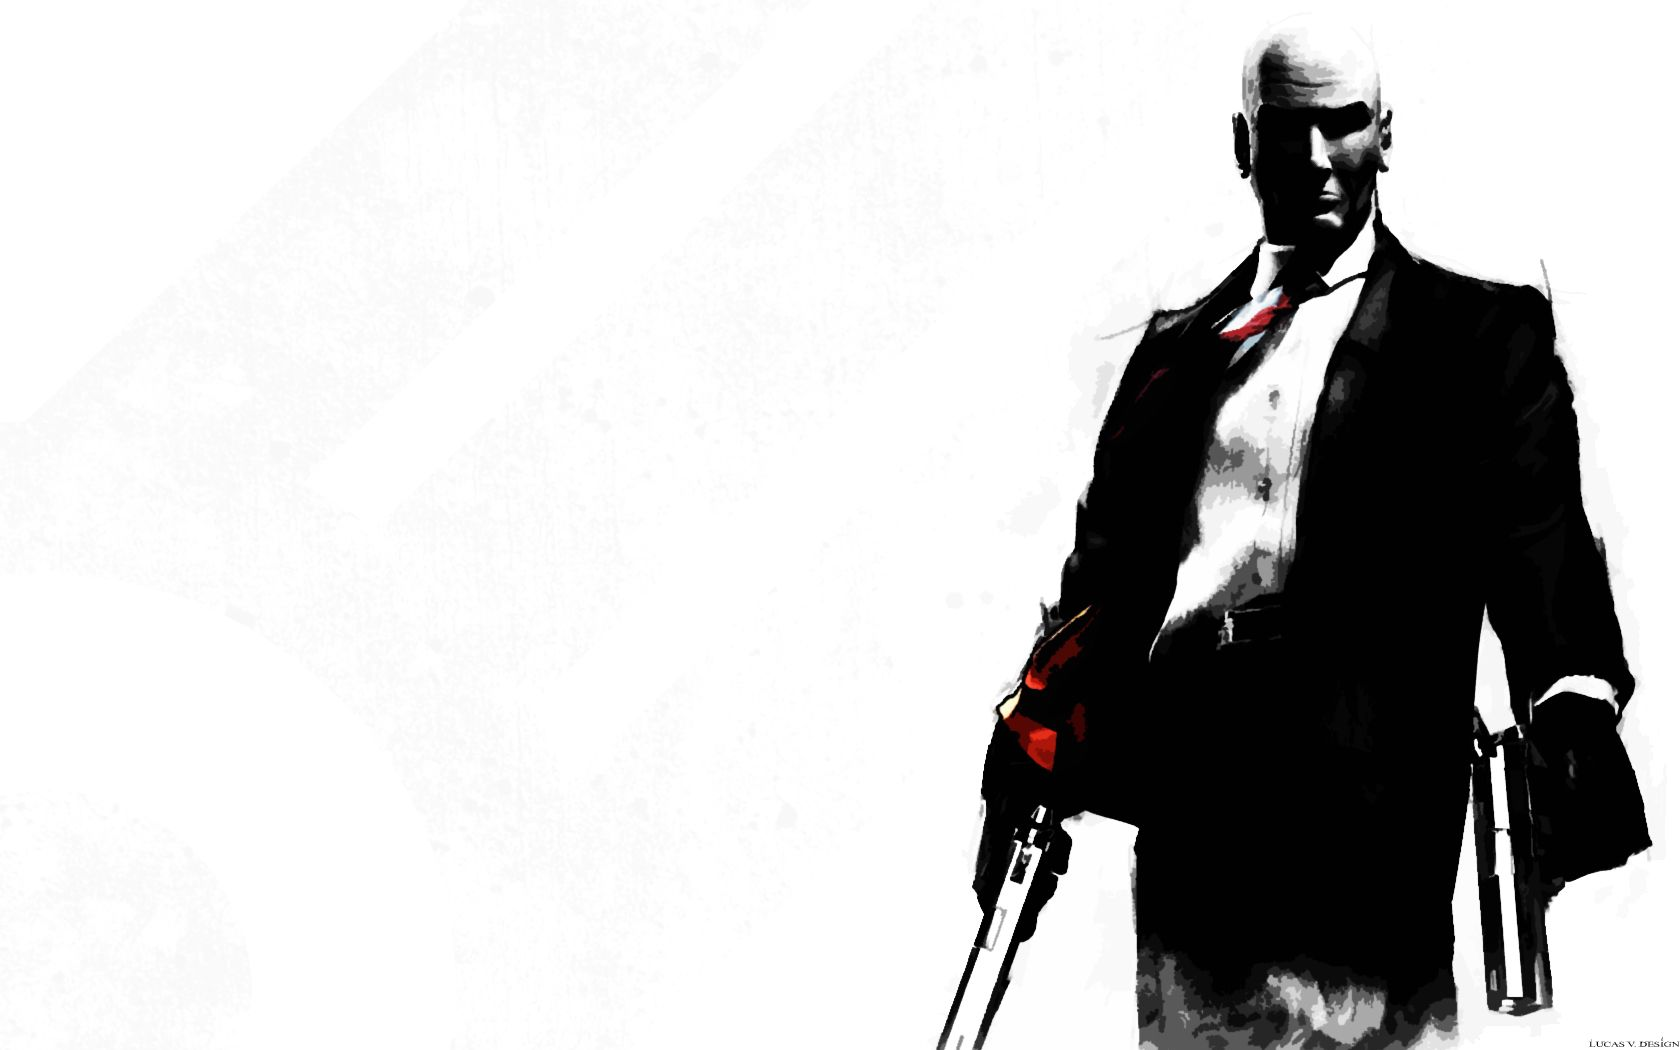 1680x1050 Hitman Wallpaper and Background Image | 1680x1050 | ID:50255 ...